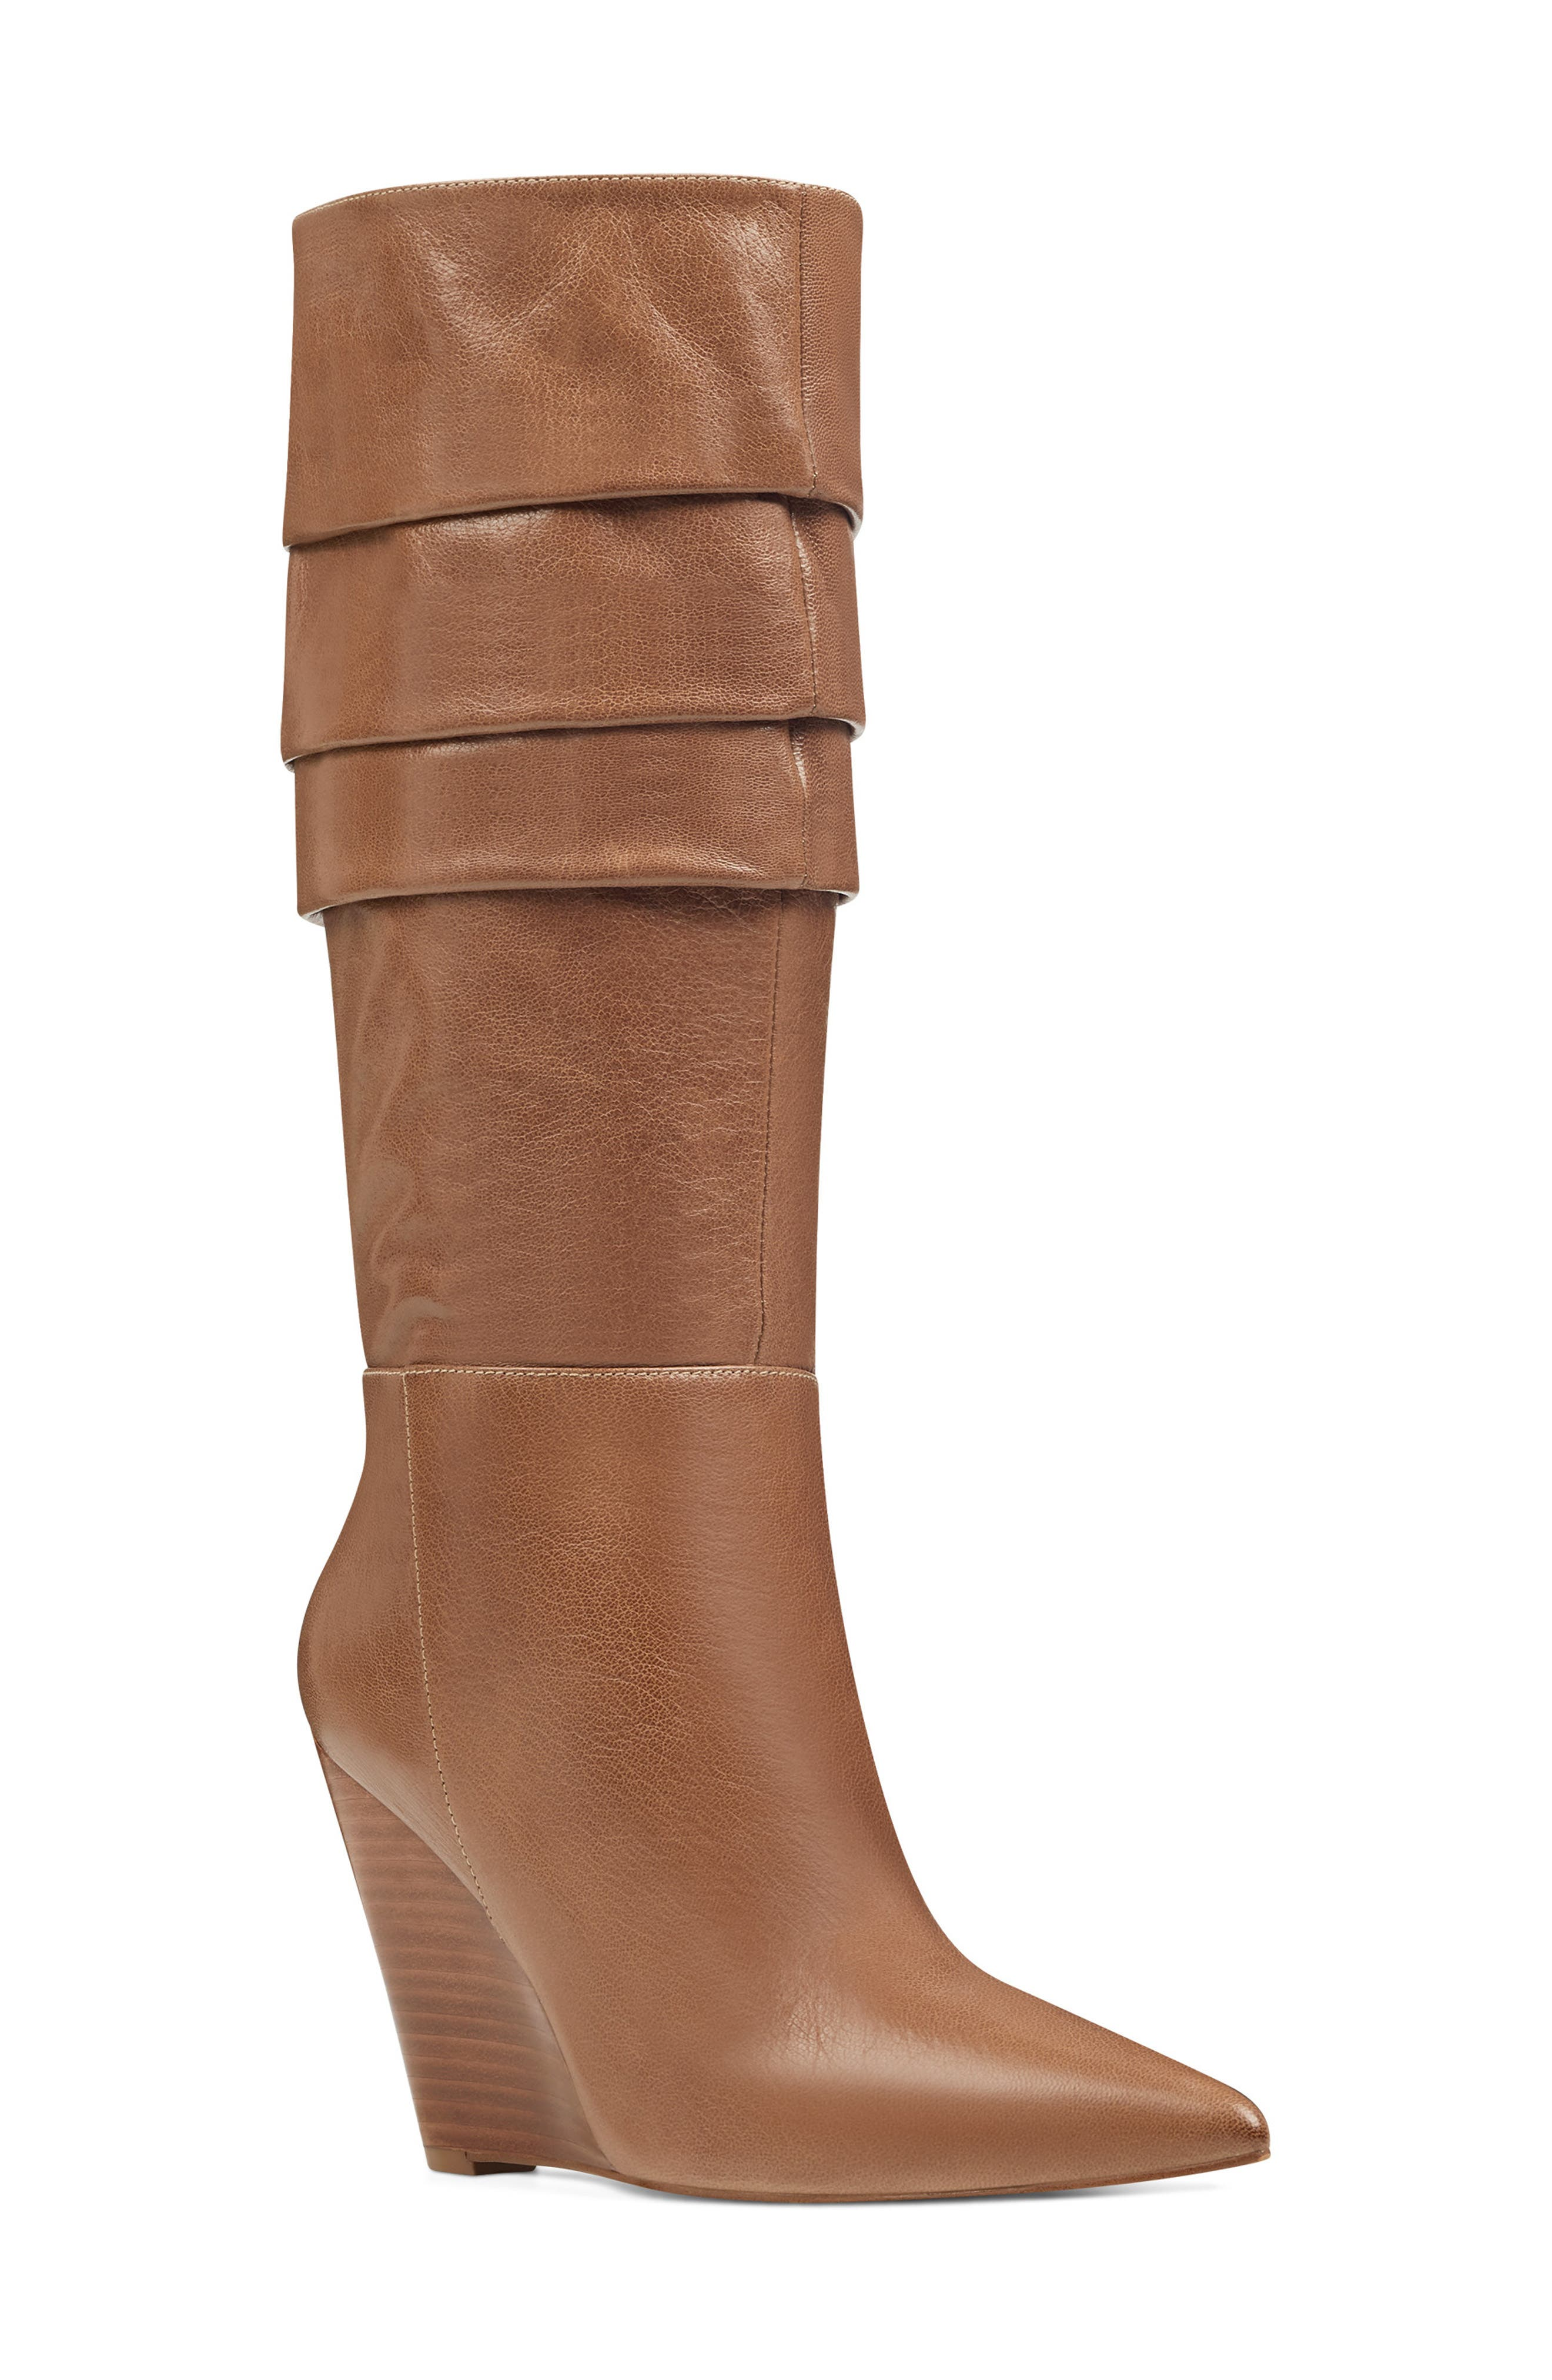 Nine West Vernese Tiered Knee High Wedge Boot- Brown